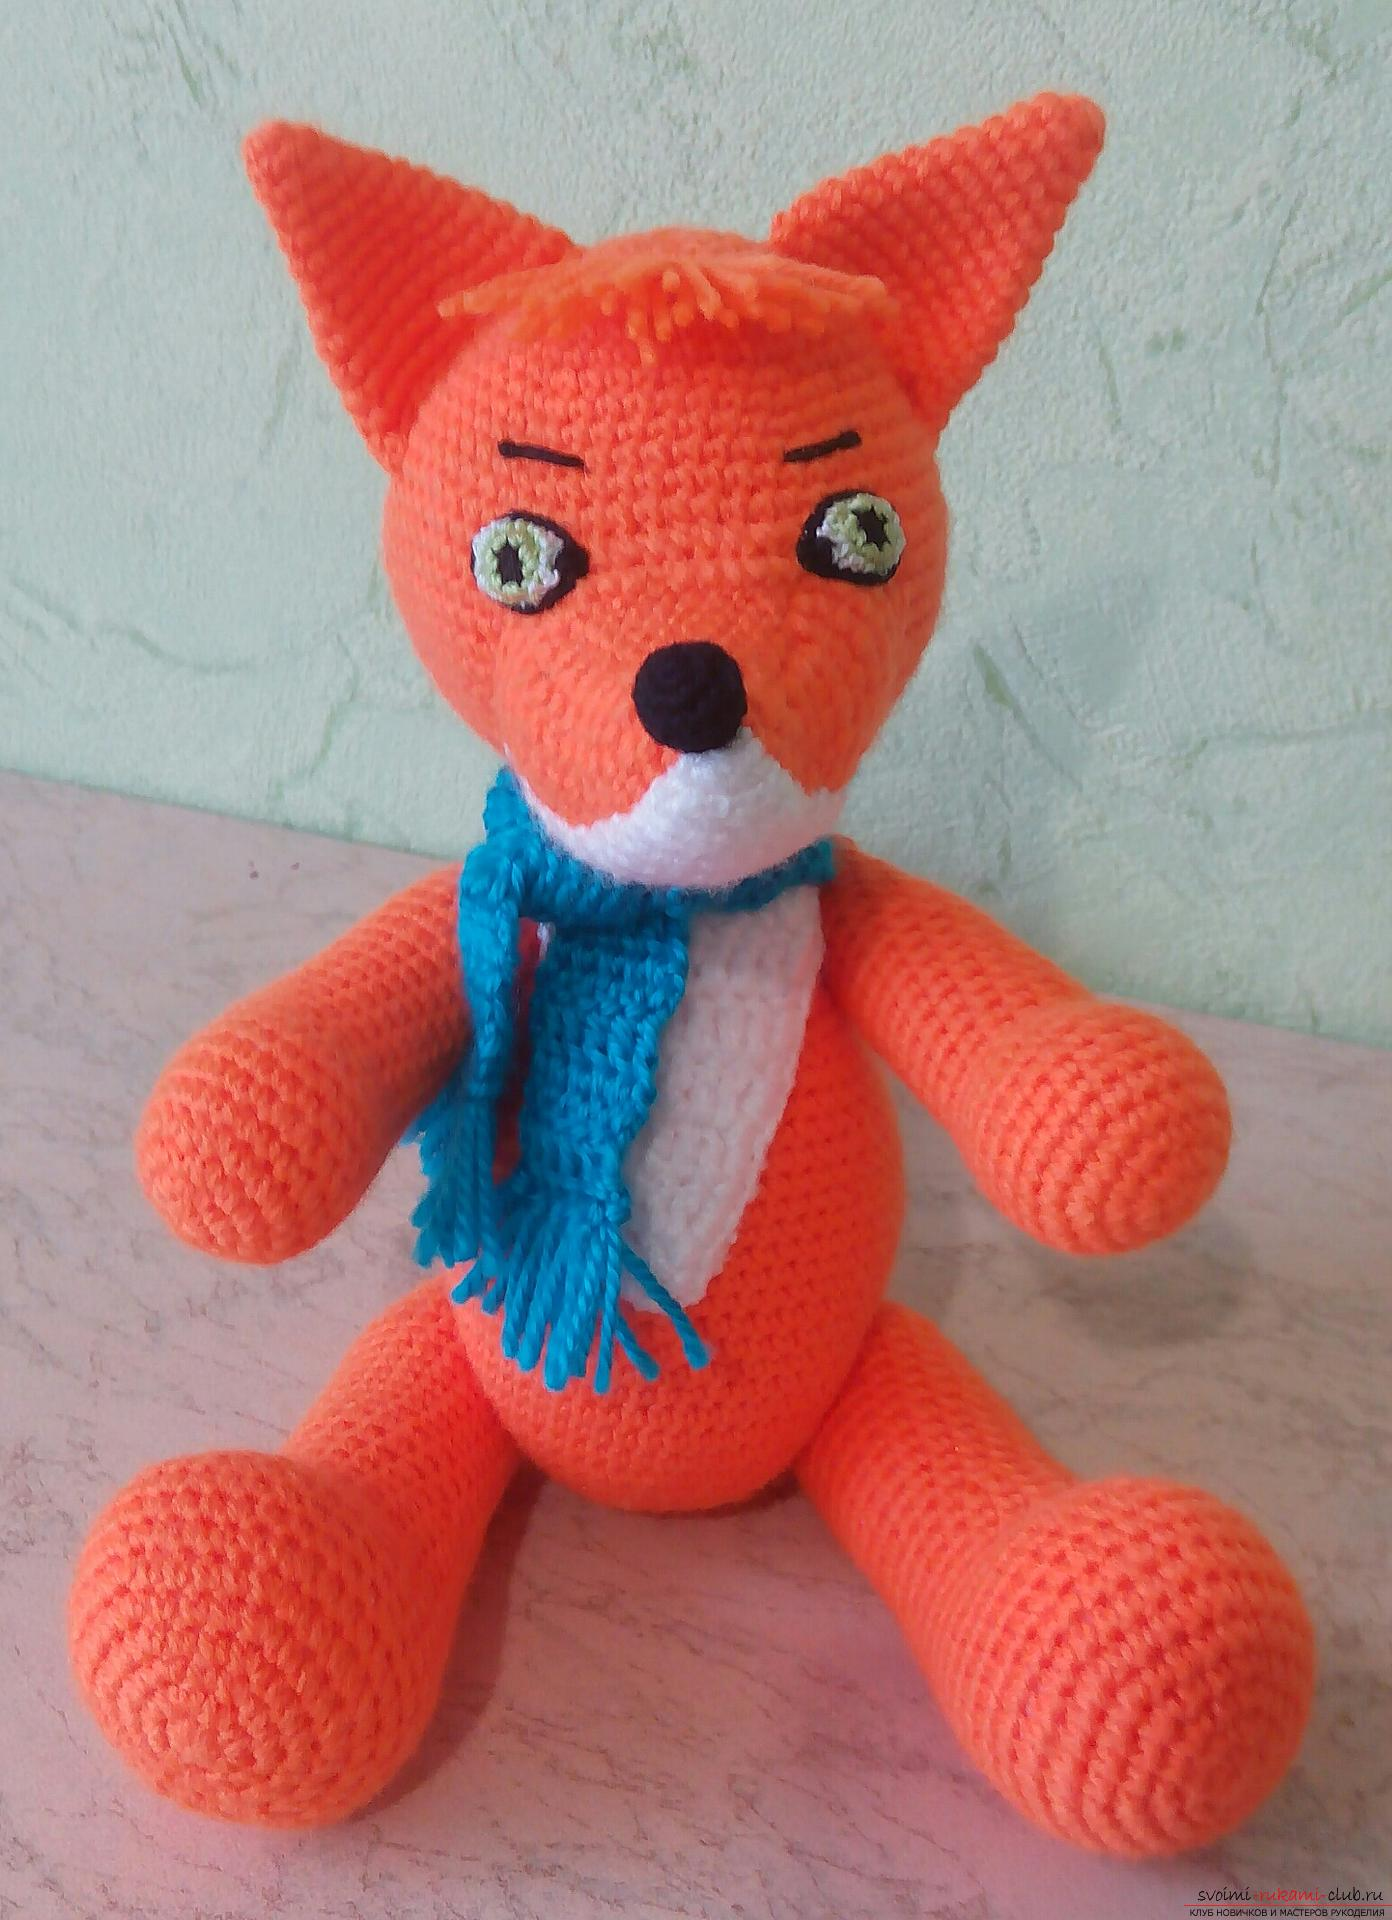 Toy lisenok with moving paws. Picture №3